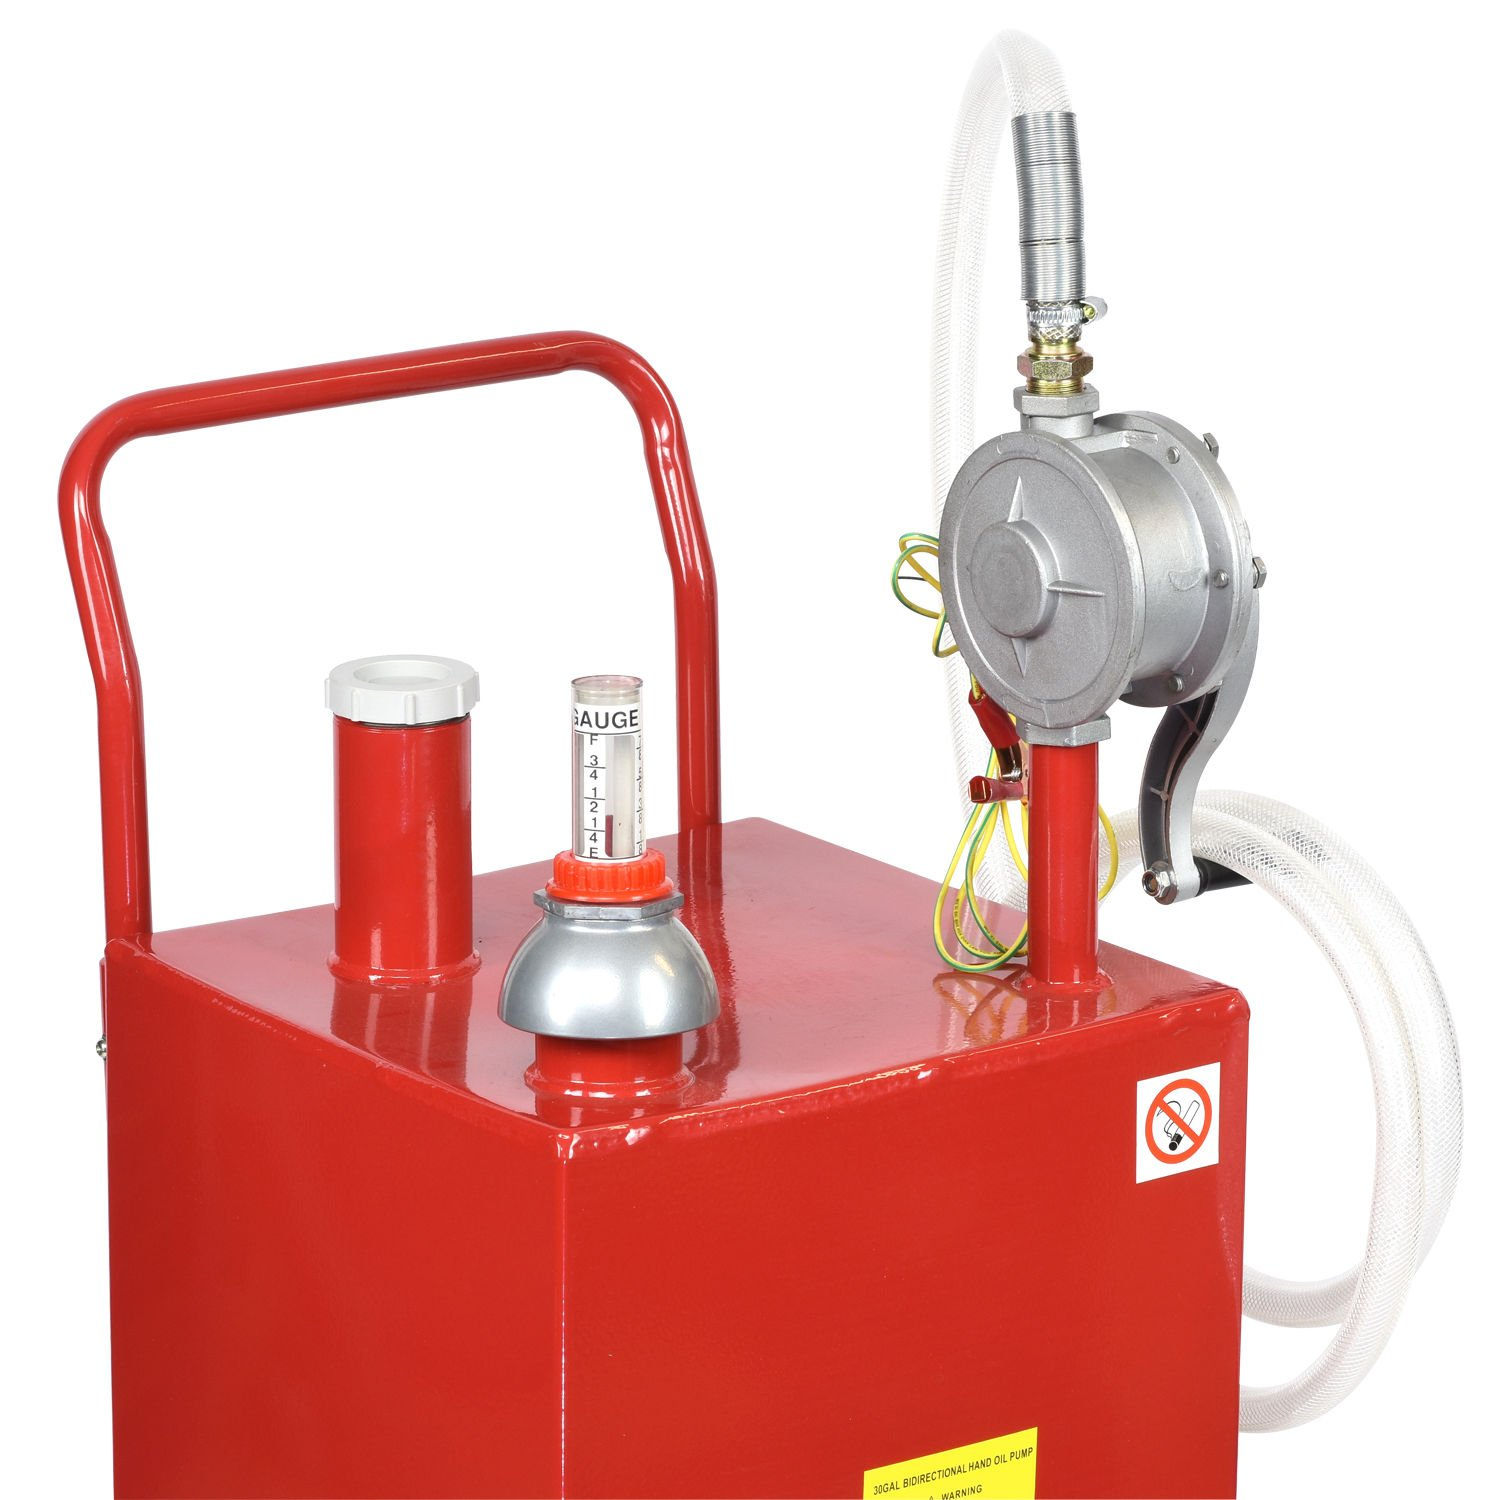 30 Gallon Gas Fuel Diesel Caddy Transfer Tank Container w/ Rotary Pump Tool by Wang Tong Shop (Image #3)